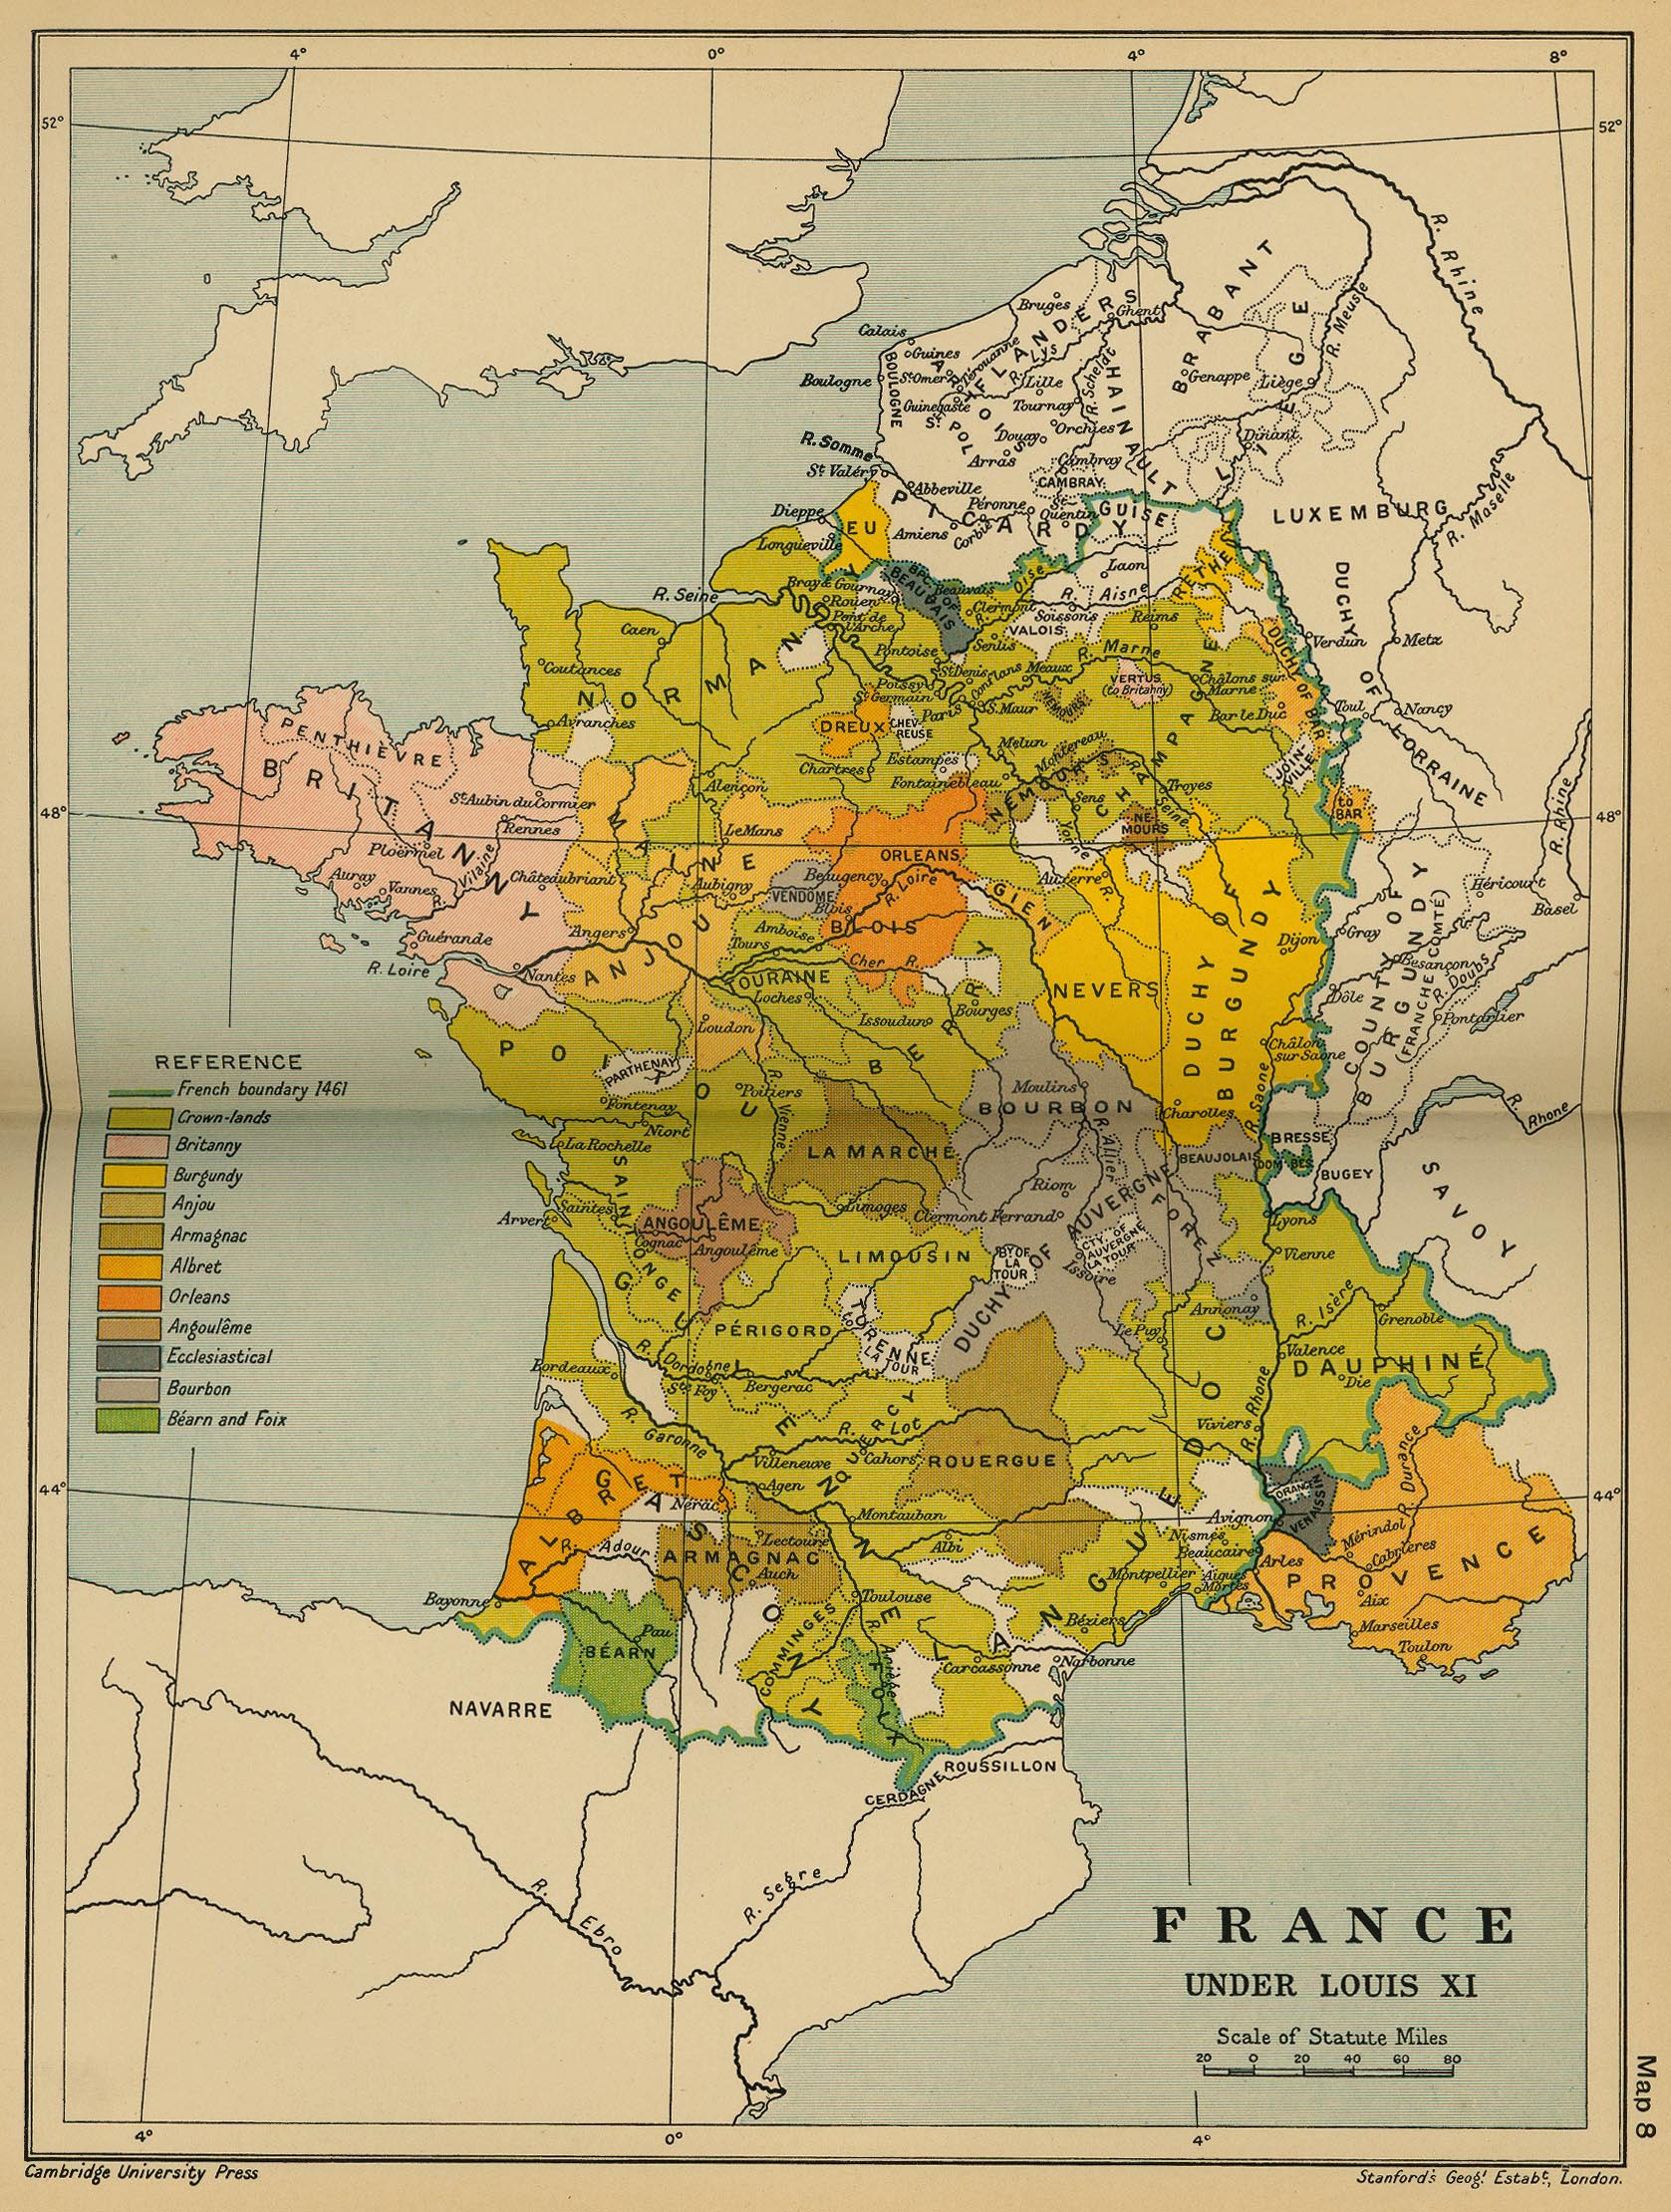 France Under Louis XI (1461-1483) | CosmoLearning History